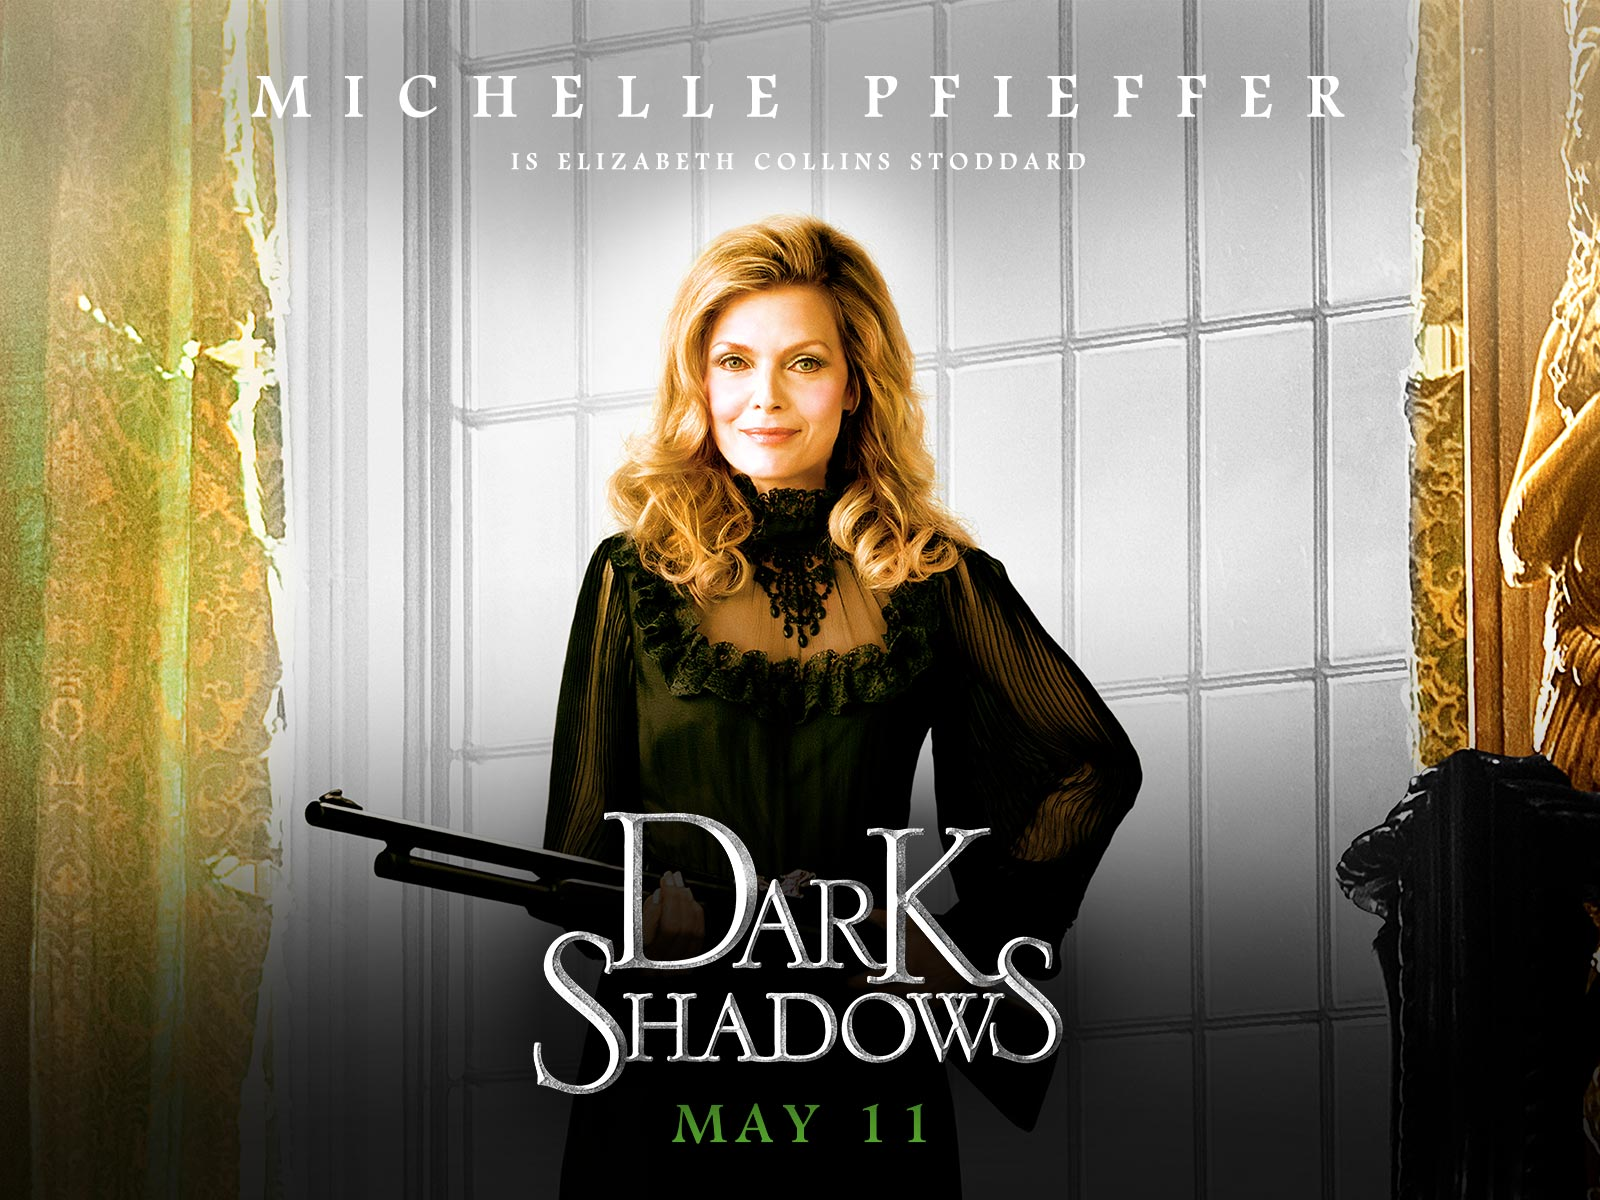 tv show dark shadows wallpaper 10031650 size 1280x1024 more dark 1600x1200